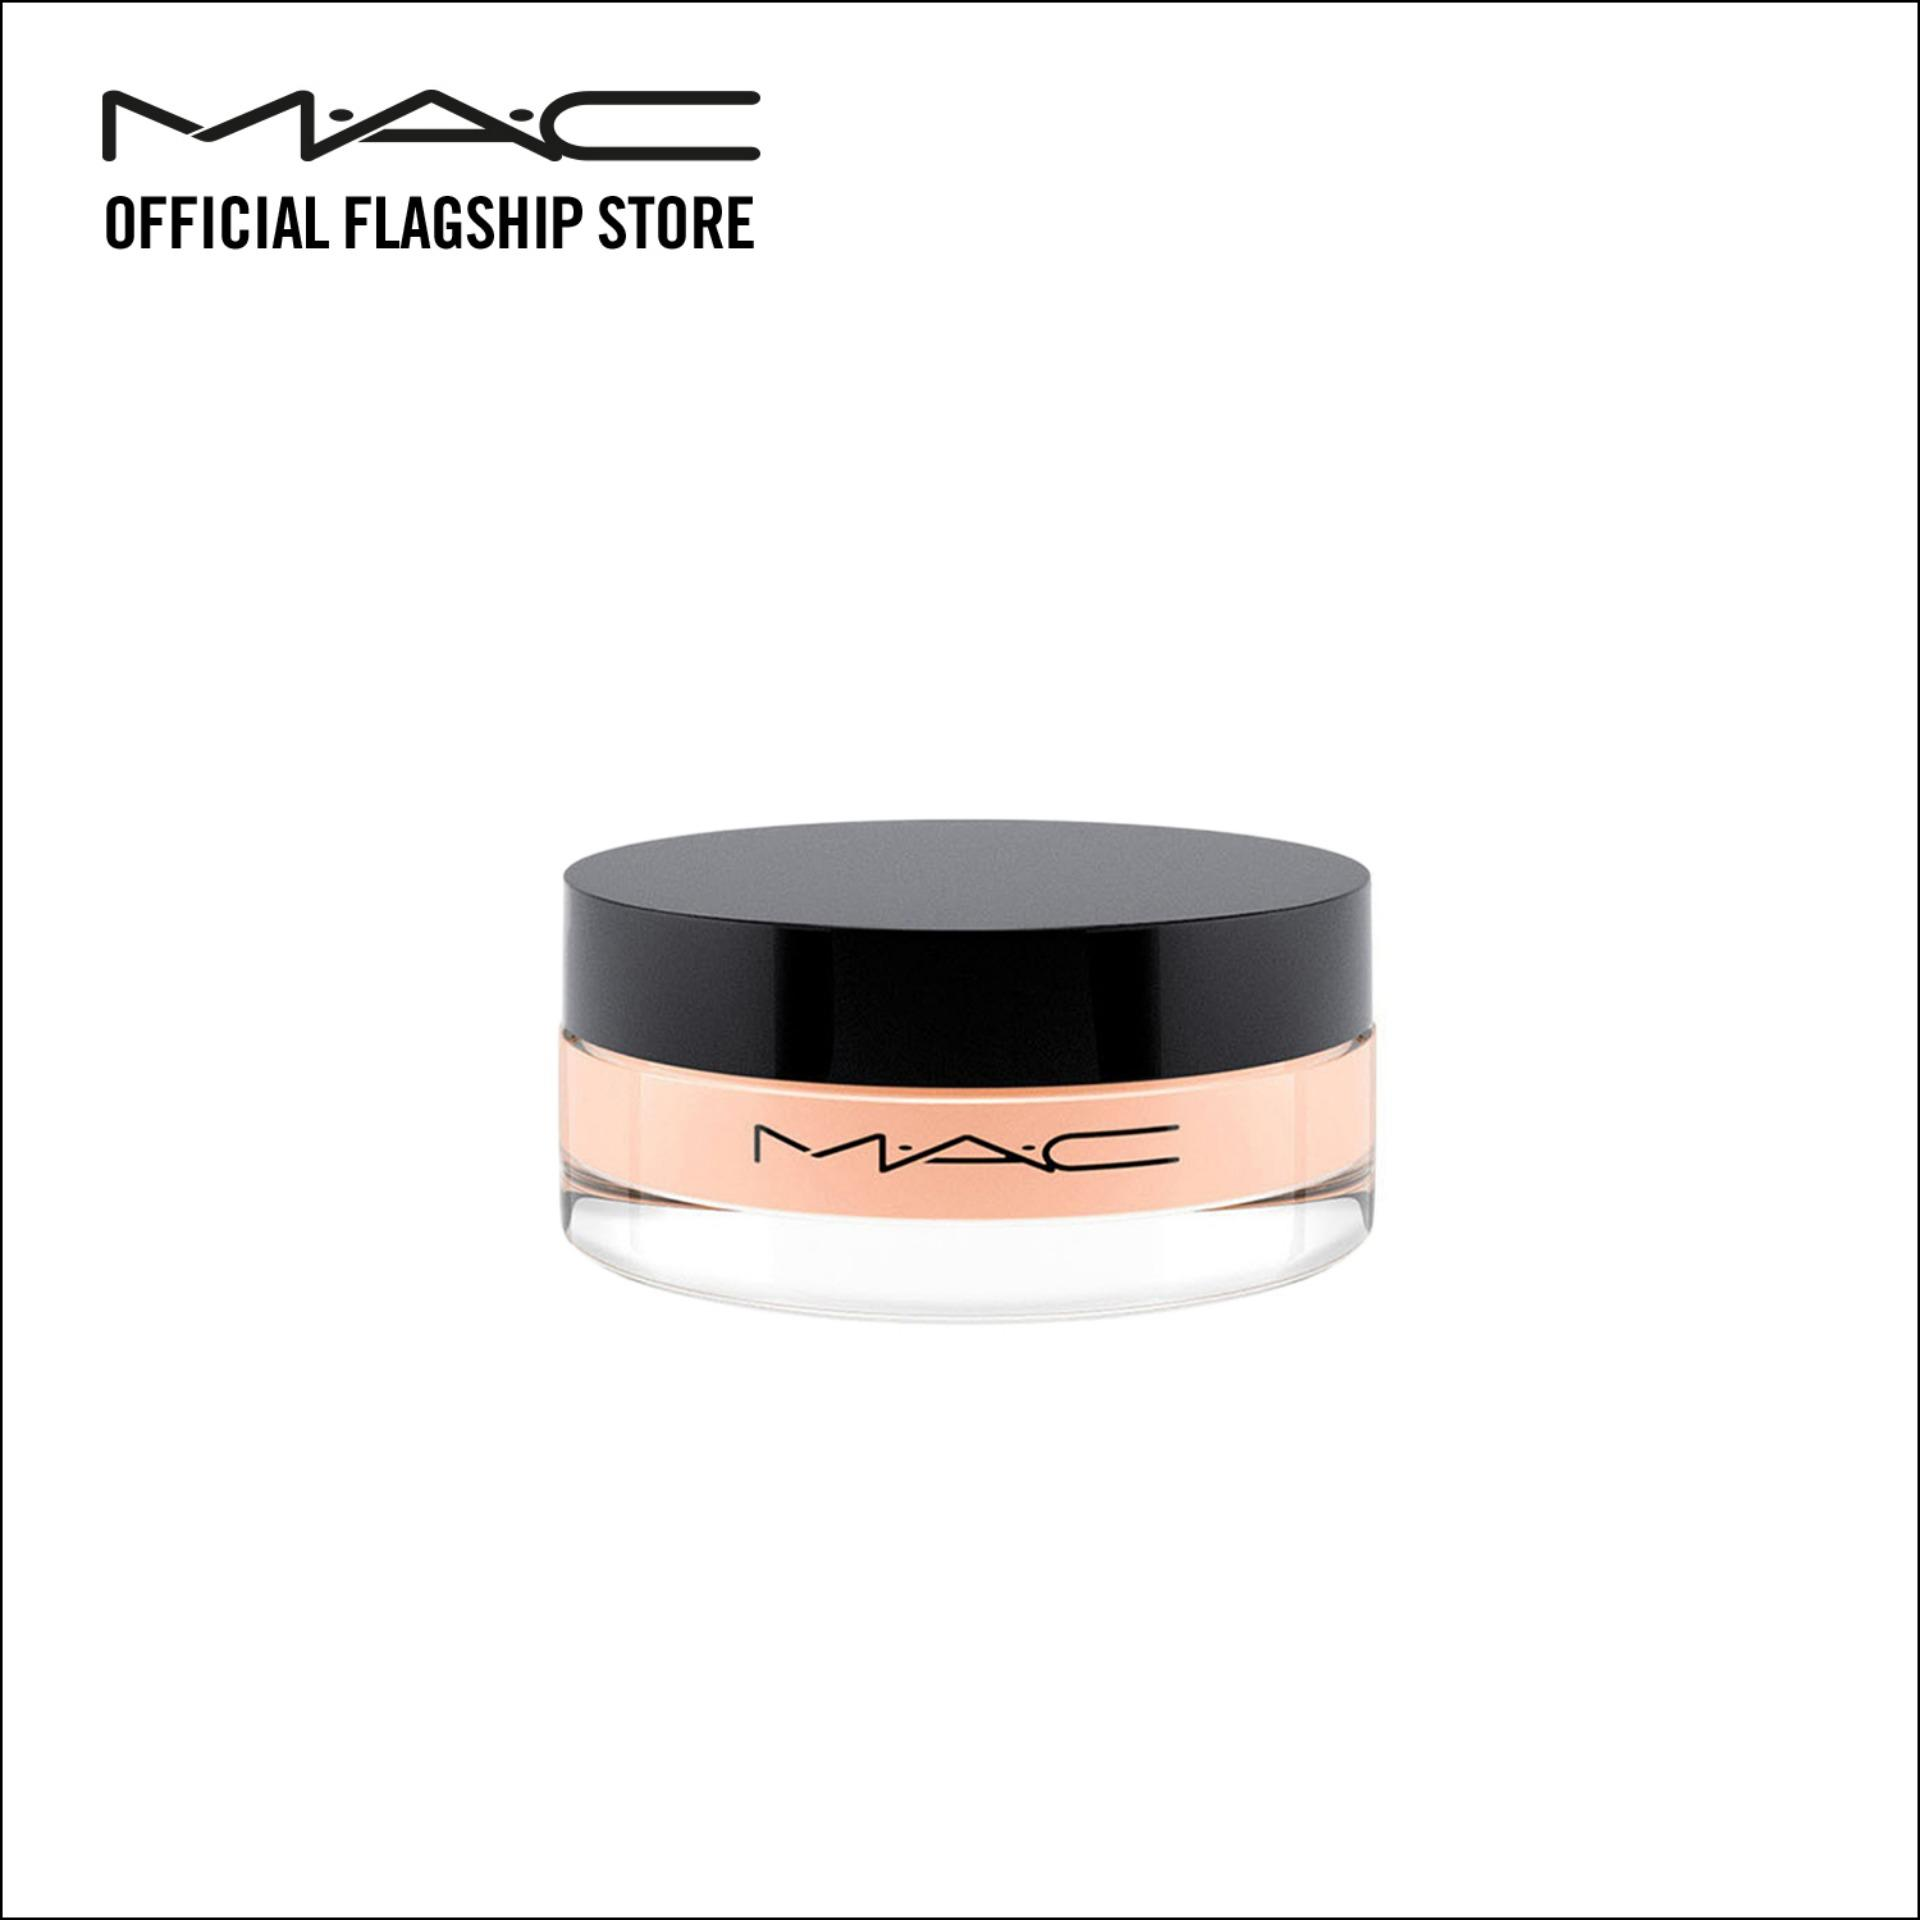 Phấn phủ dạng bột MAC Studio Fix Perfecting Powder 8g